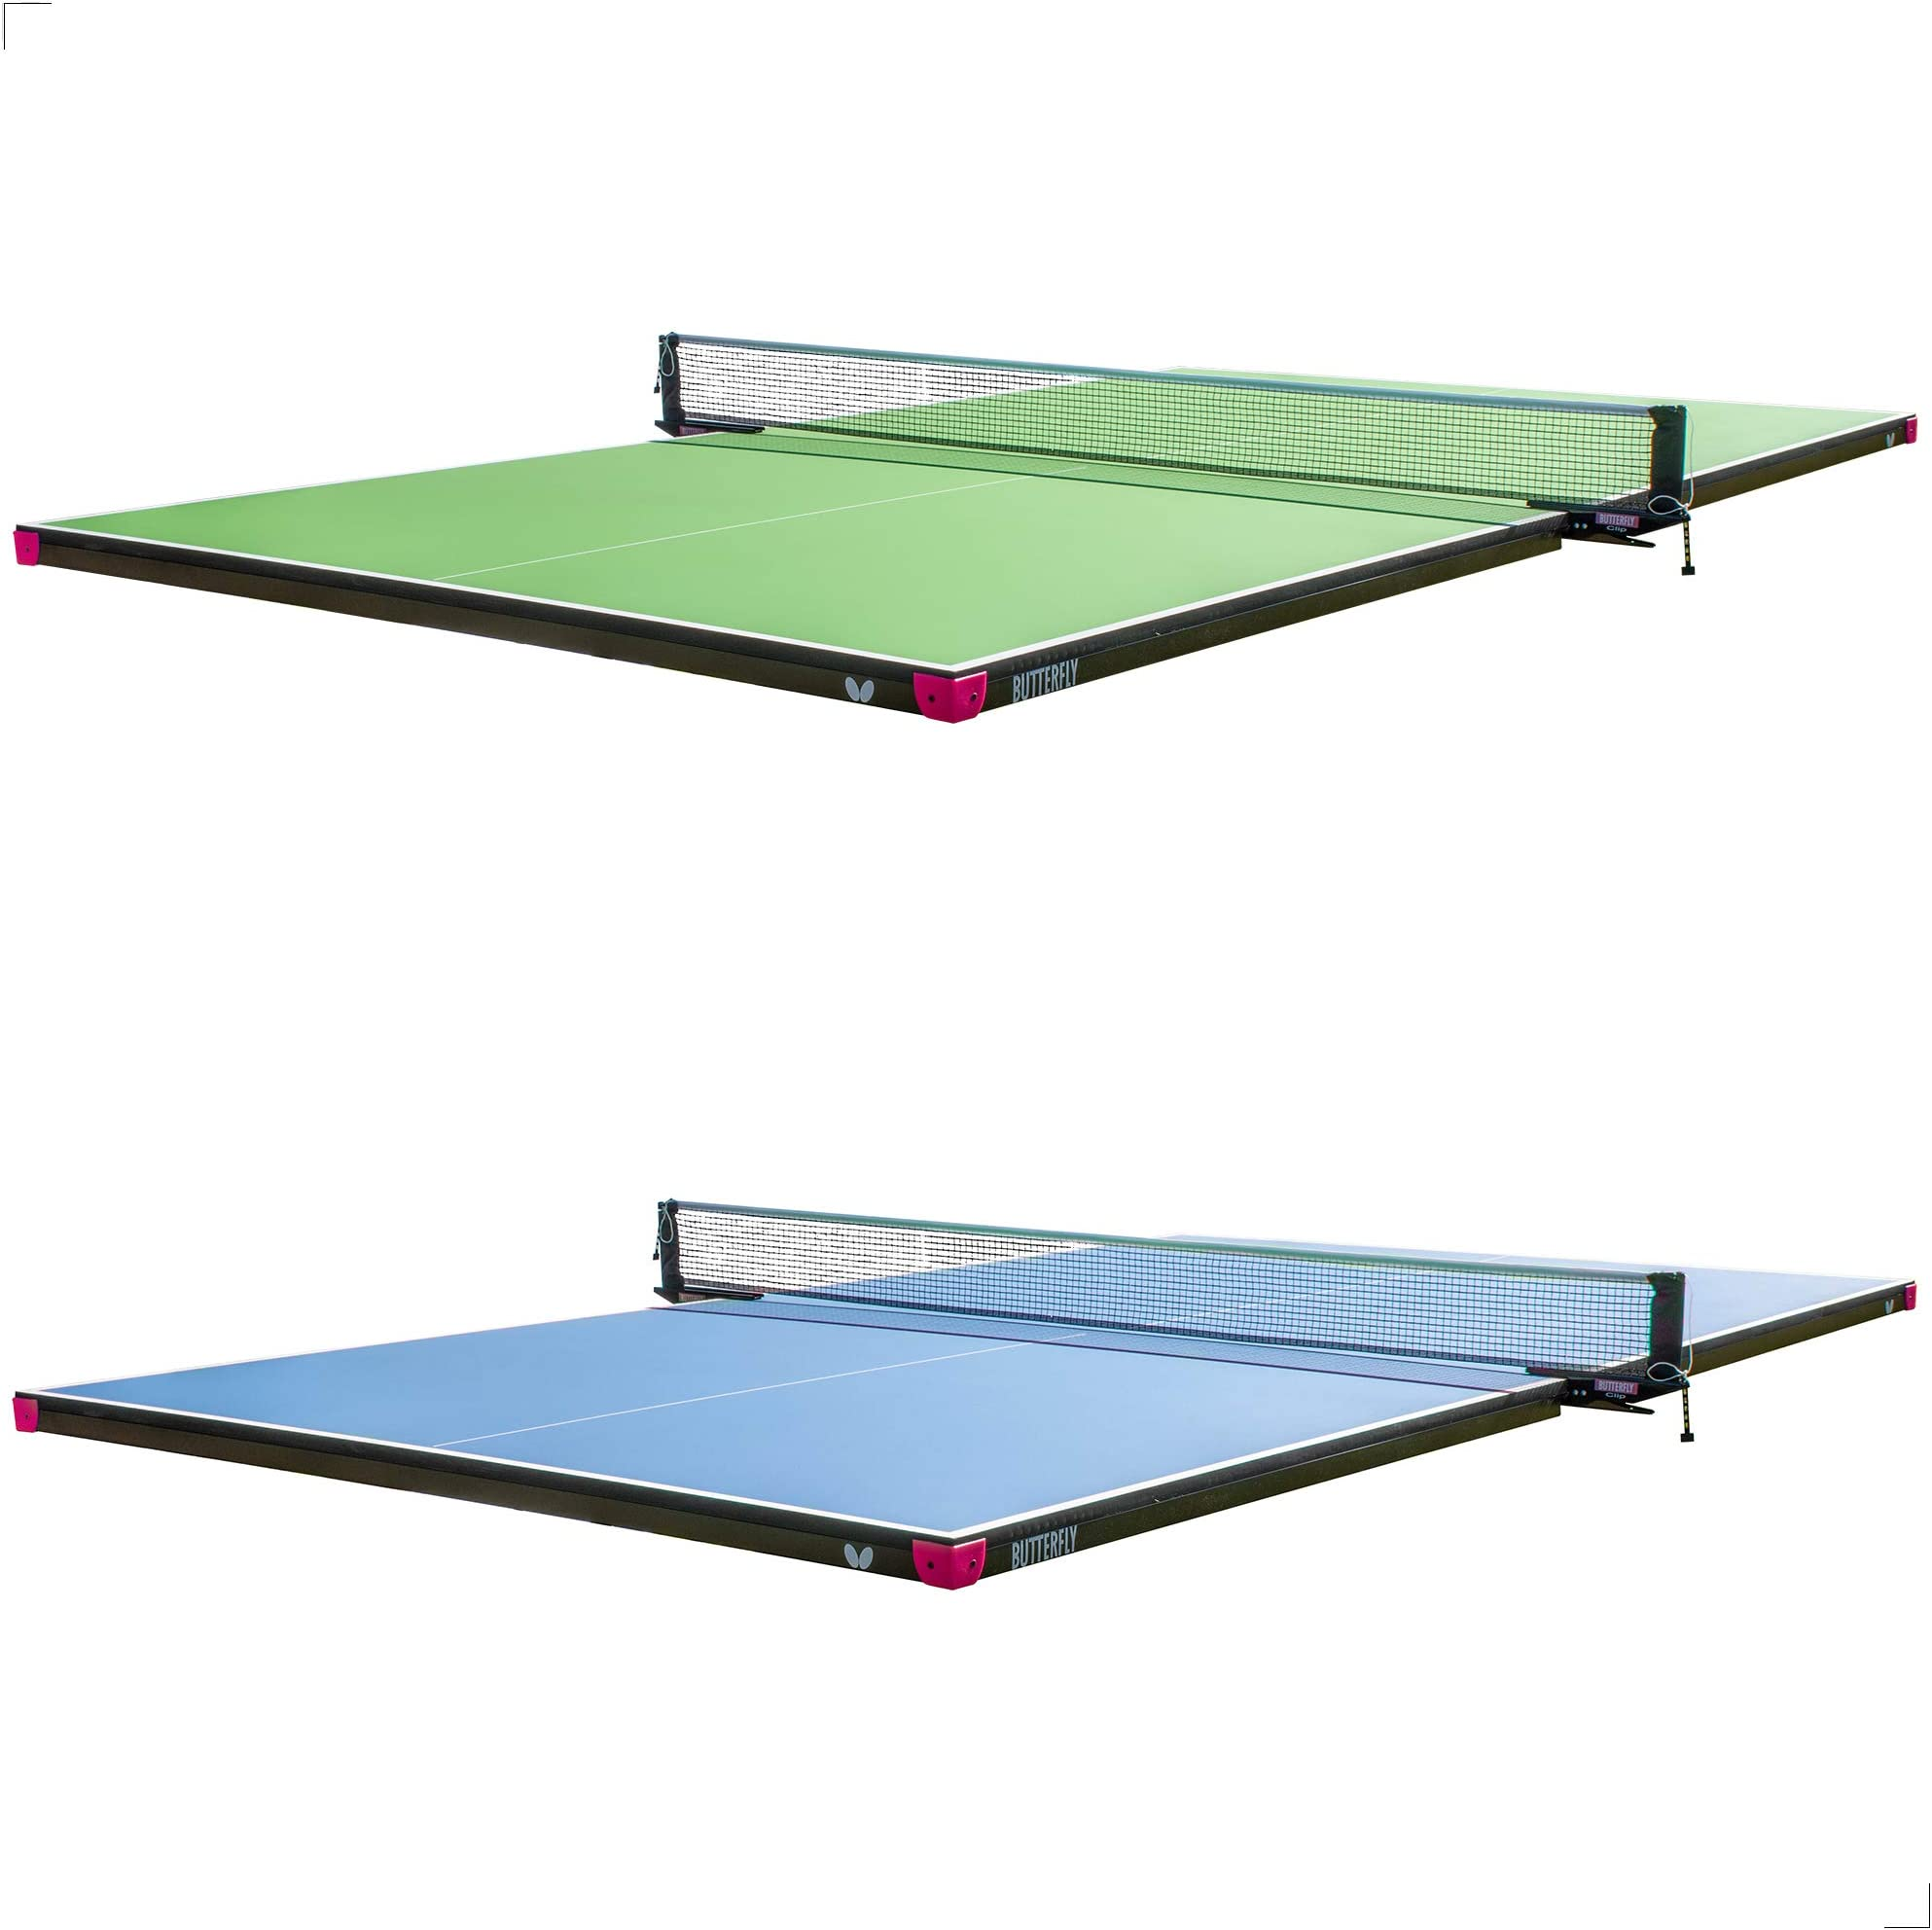 Butterfly Pool Table Conversion Top for Billiard Table - Conversion Table Tennis Game Table with Net - Pool Table Topper Game Tables - Pool Table Conversion Top for Ping Pong